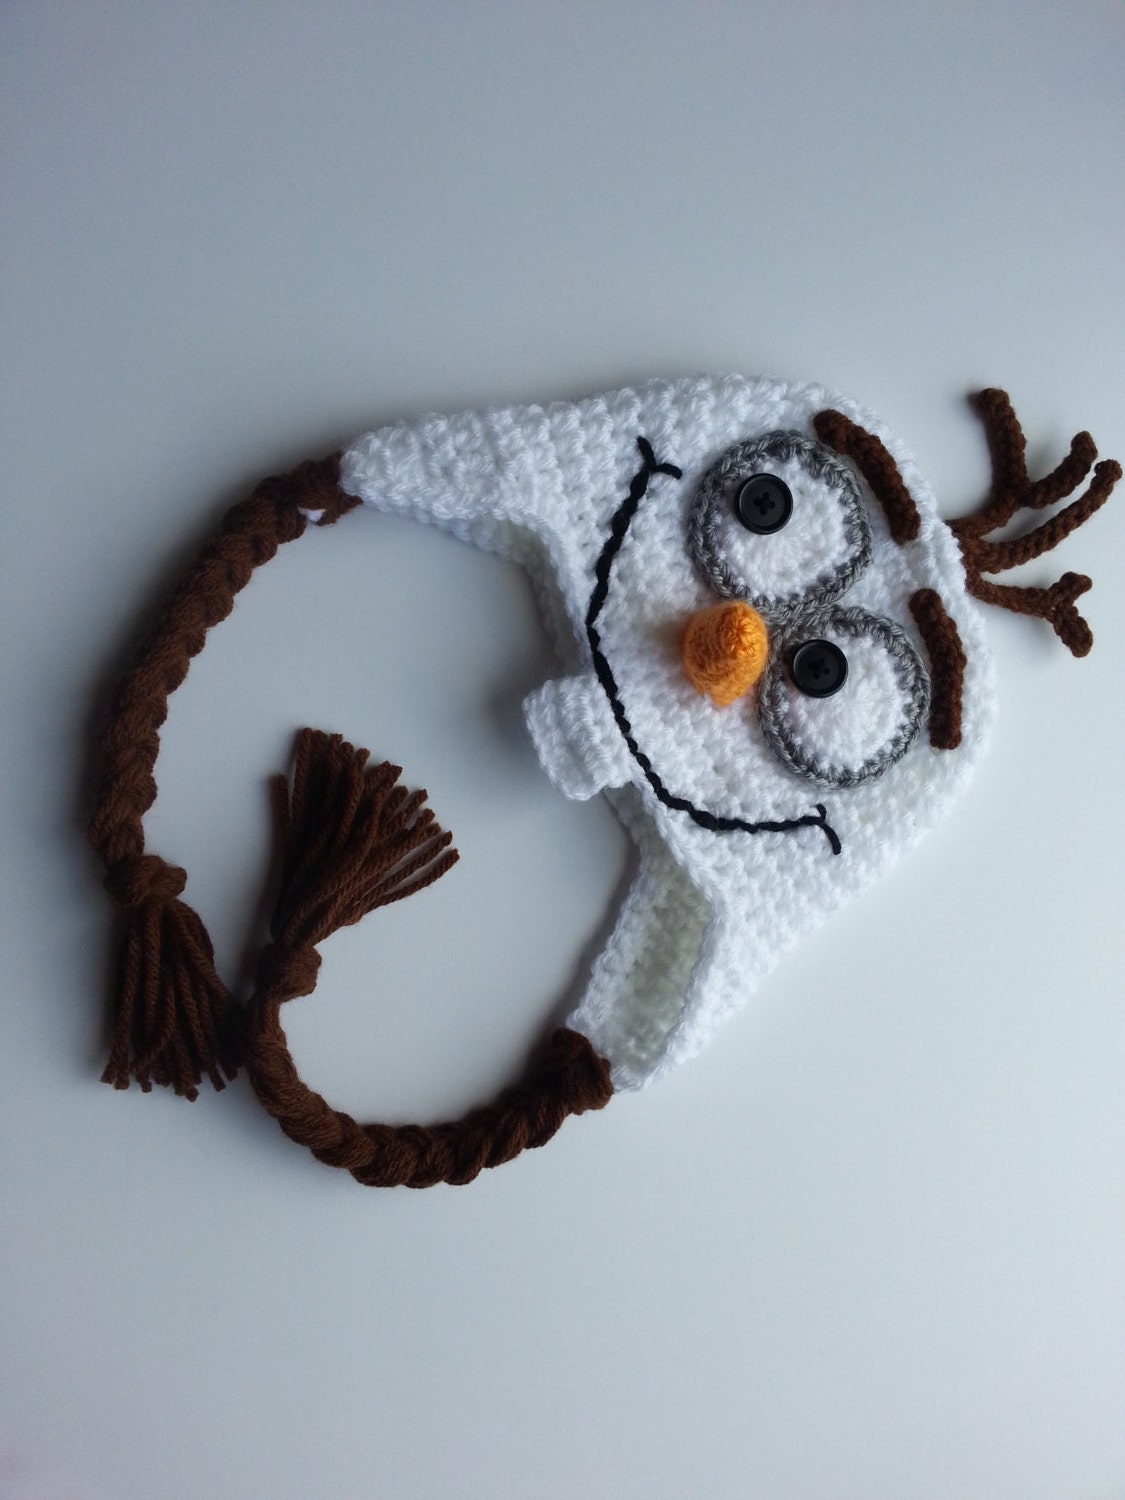 Crochet Olaf Hat Frozen Hats photo prop-Olaf by crochetjandra